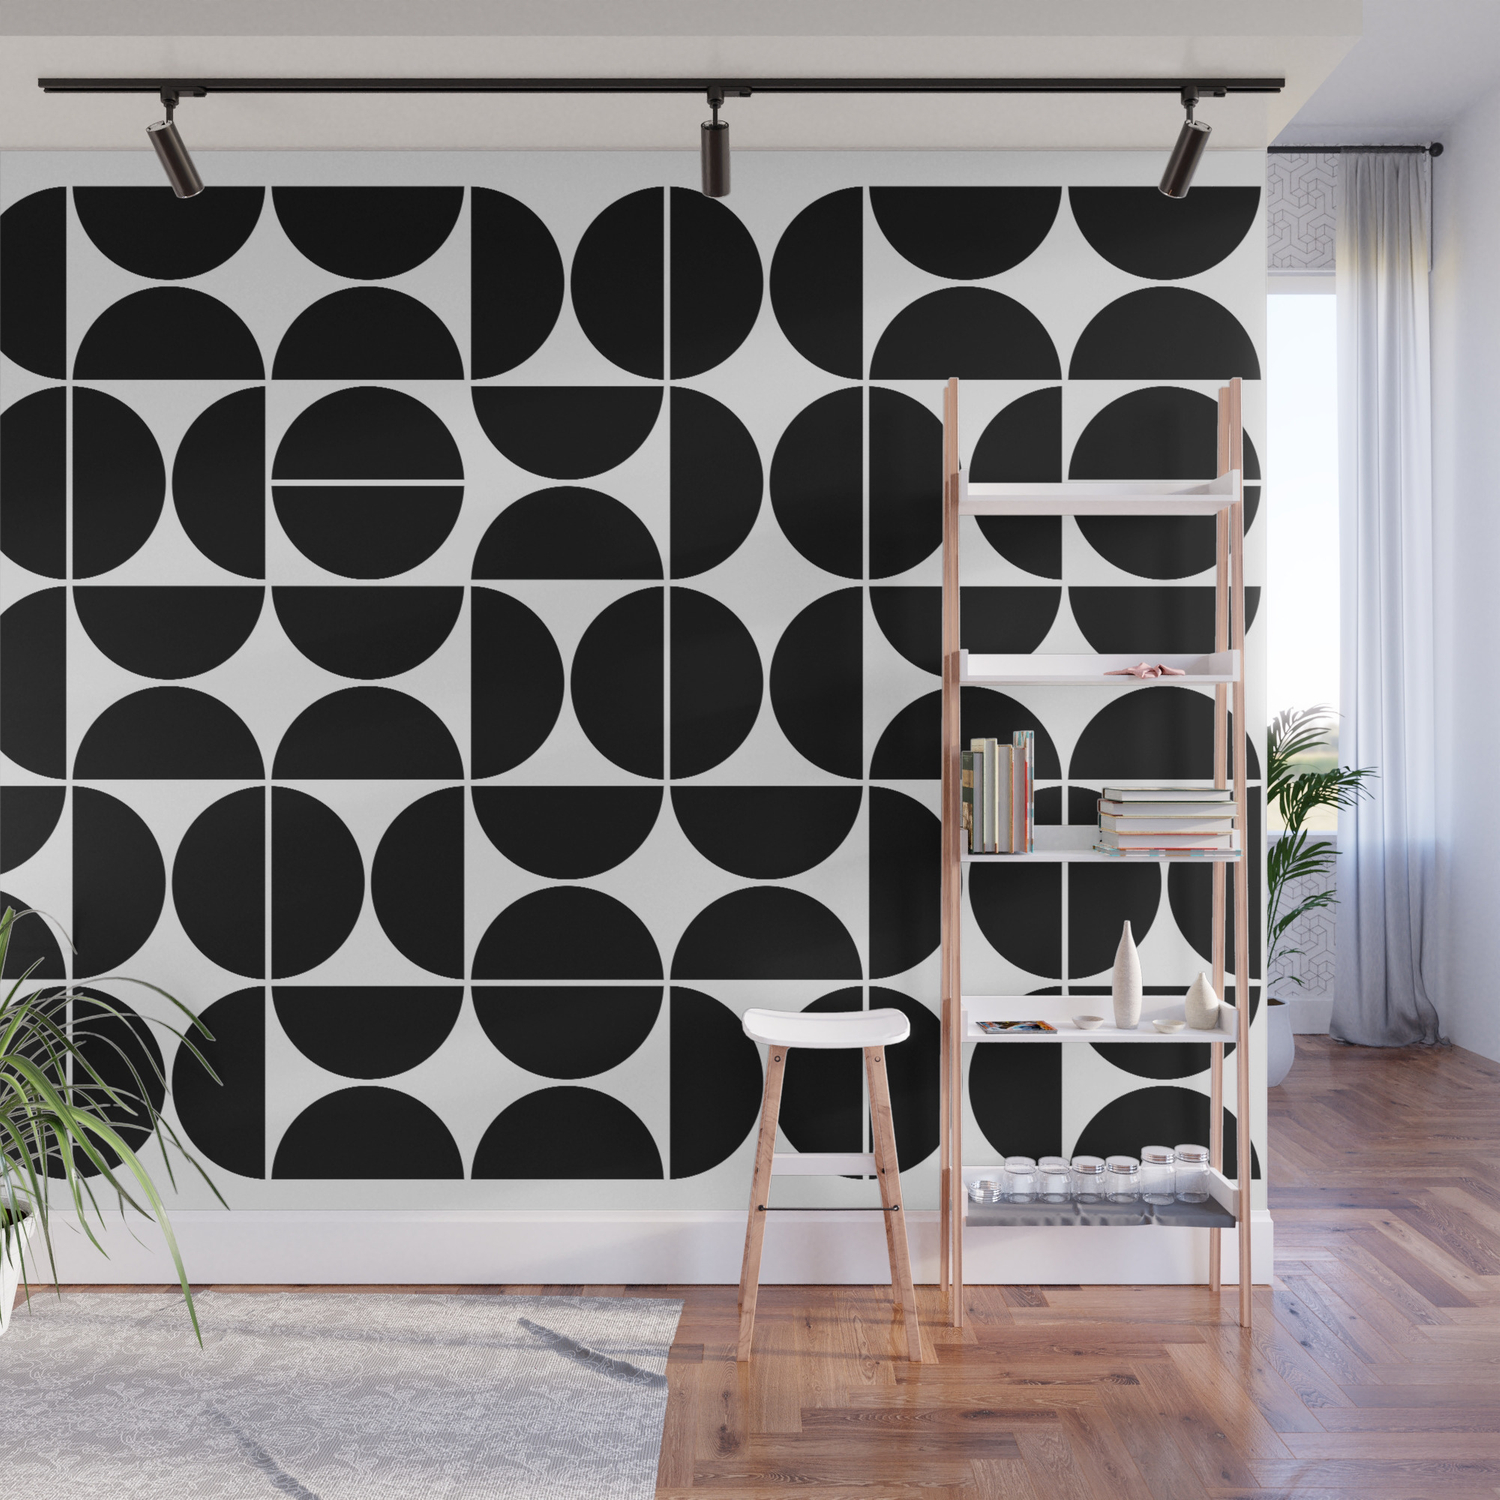 Image of: Mid Century Modern Geometric 04 Black Wall Mural By Theoldartstudio Society6